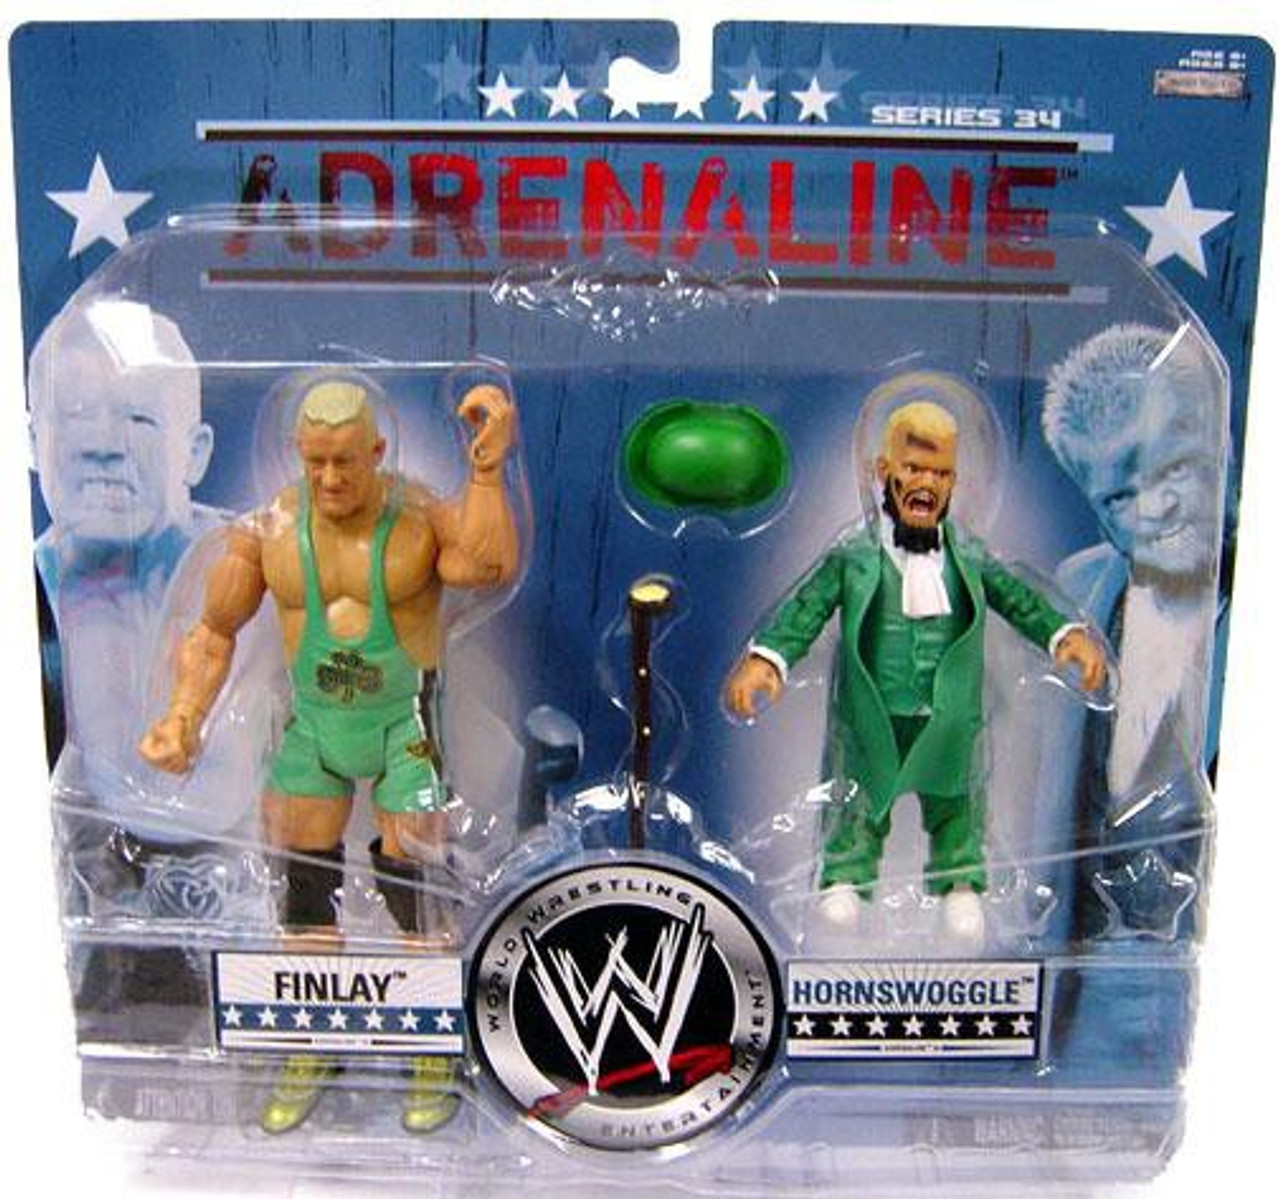 WWE Wrestling Adrenaline Series 34 Finlay & Hornswoggle Action Figure 2-Pack